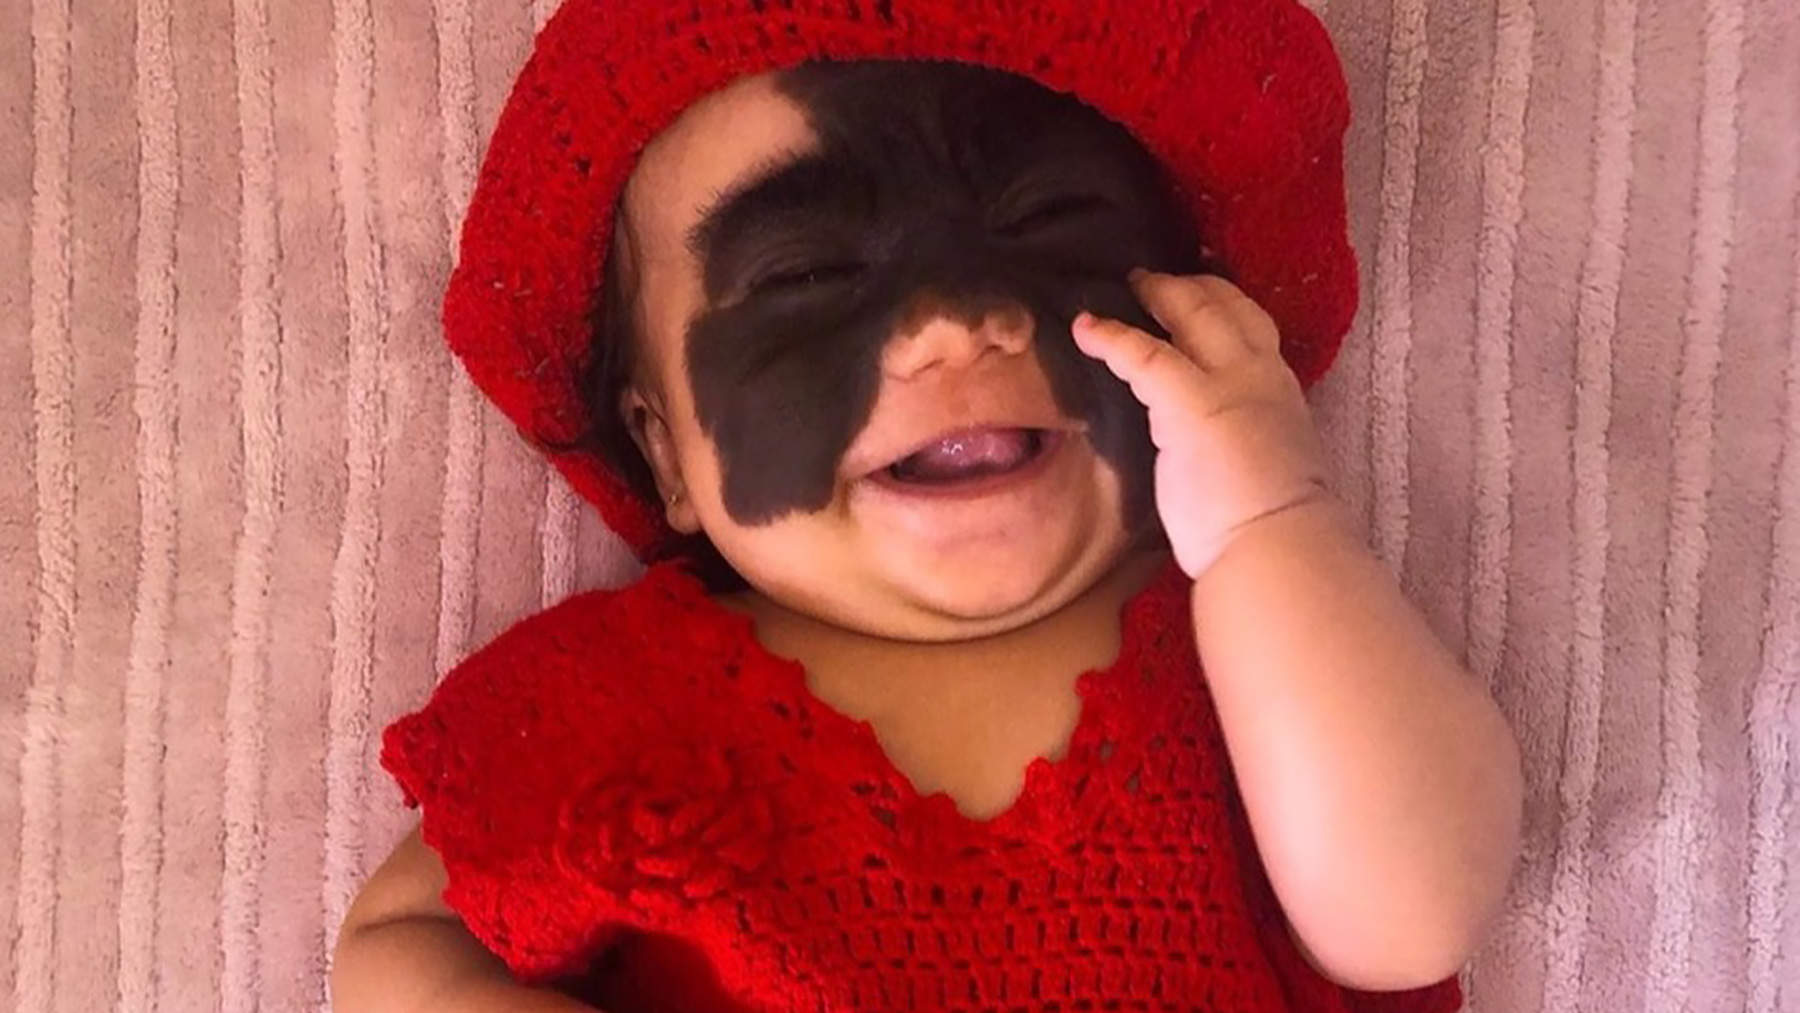 Baby Born with Rare Skin Condition Will Have Batman-Shaped Face Patch Removed